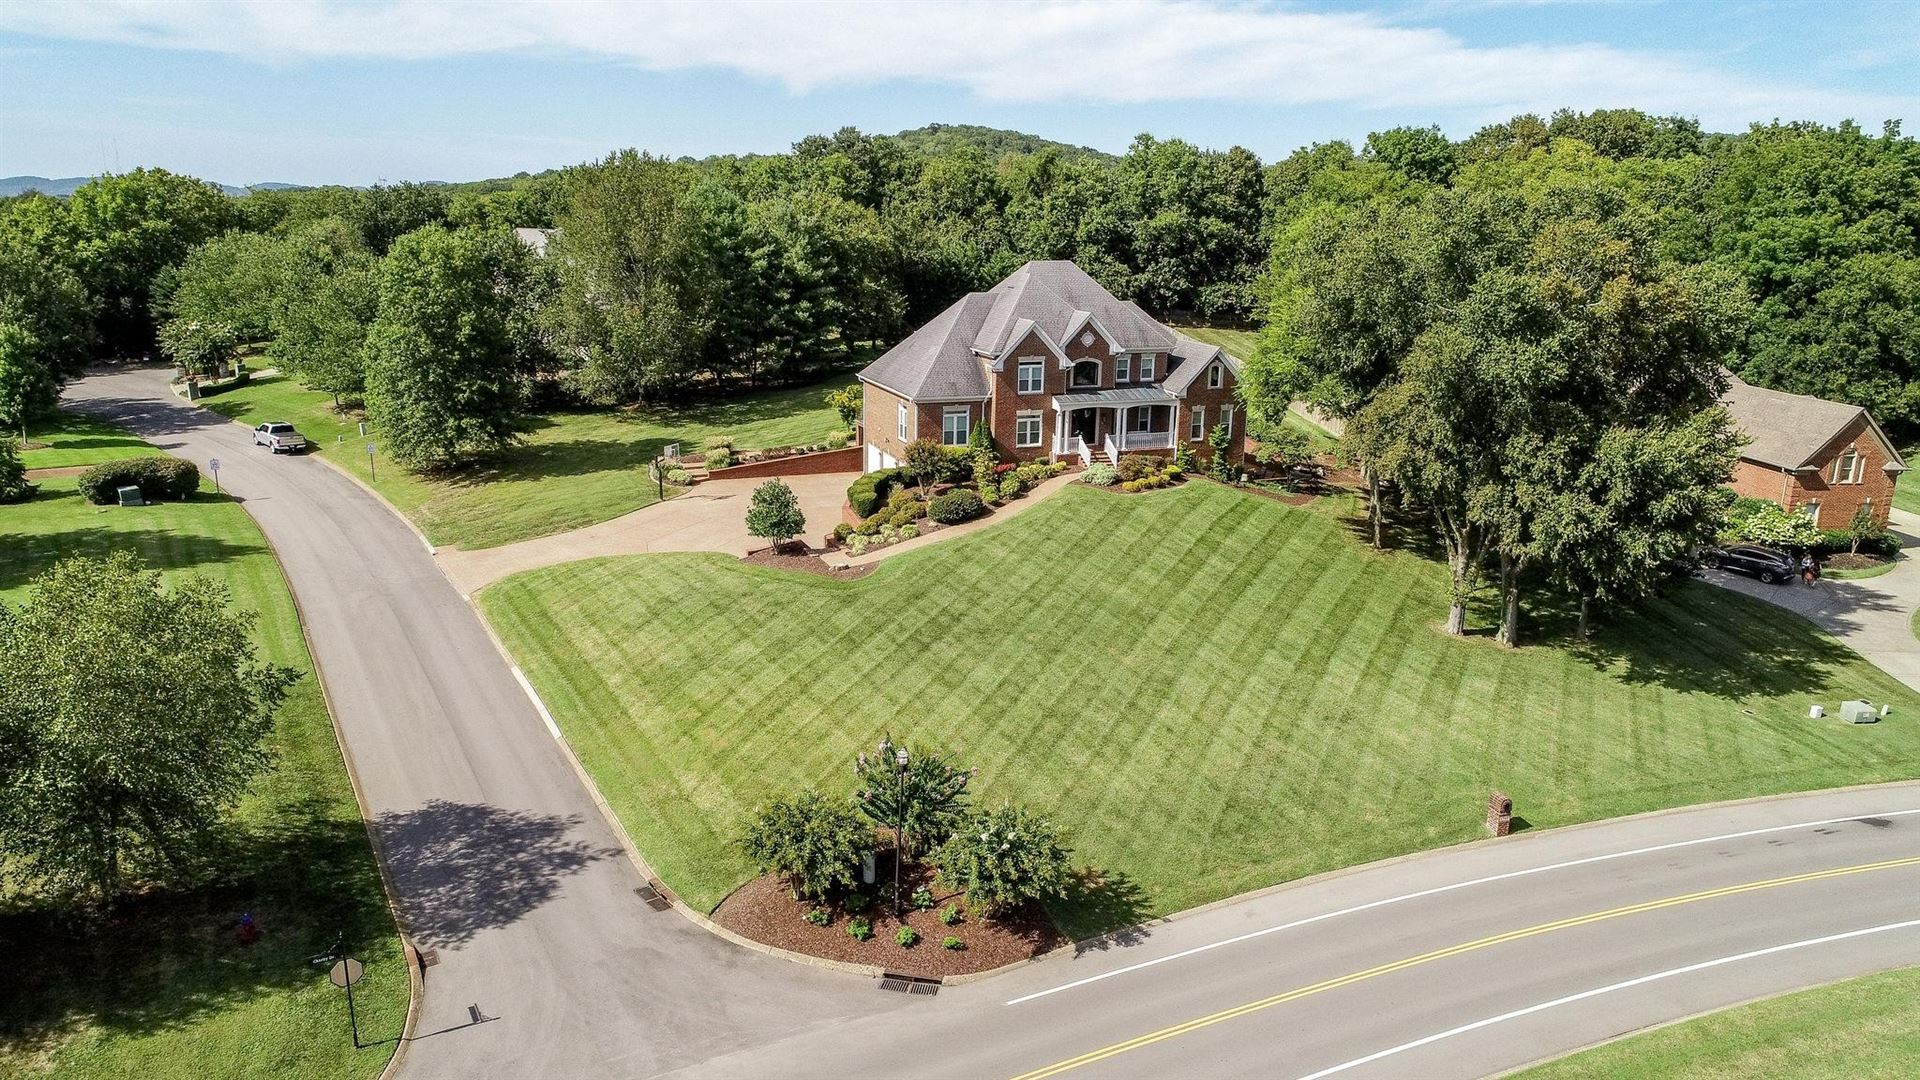 Photo of 1749 Charity Dr, Brentwood, TN 37027 (MLS # 2123356)